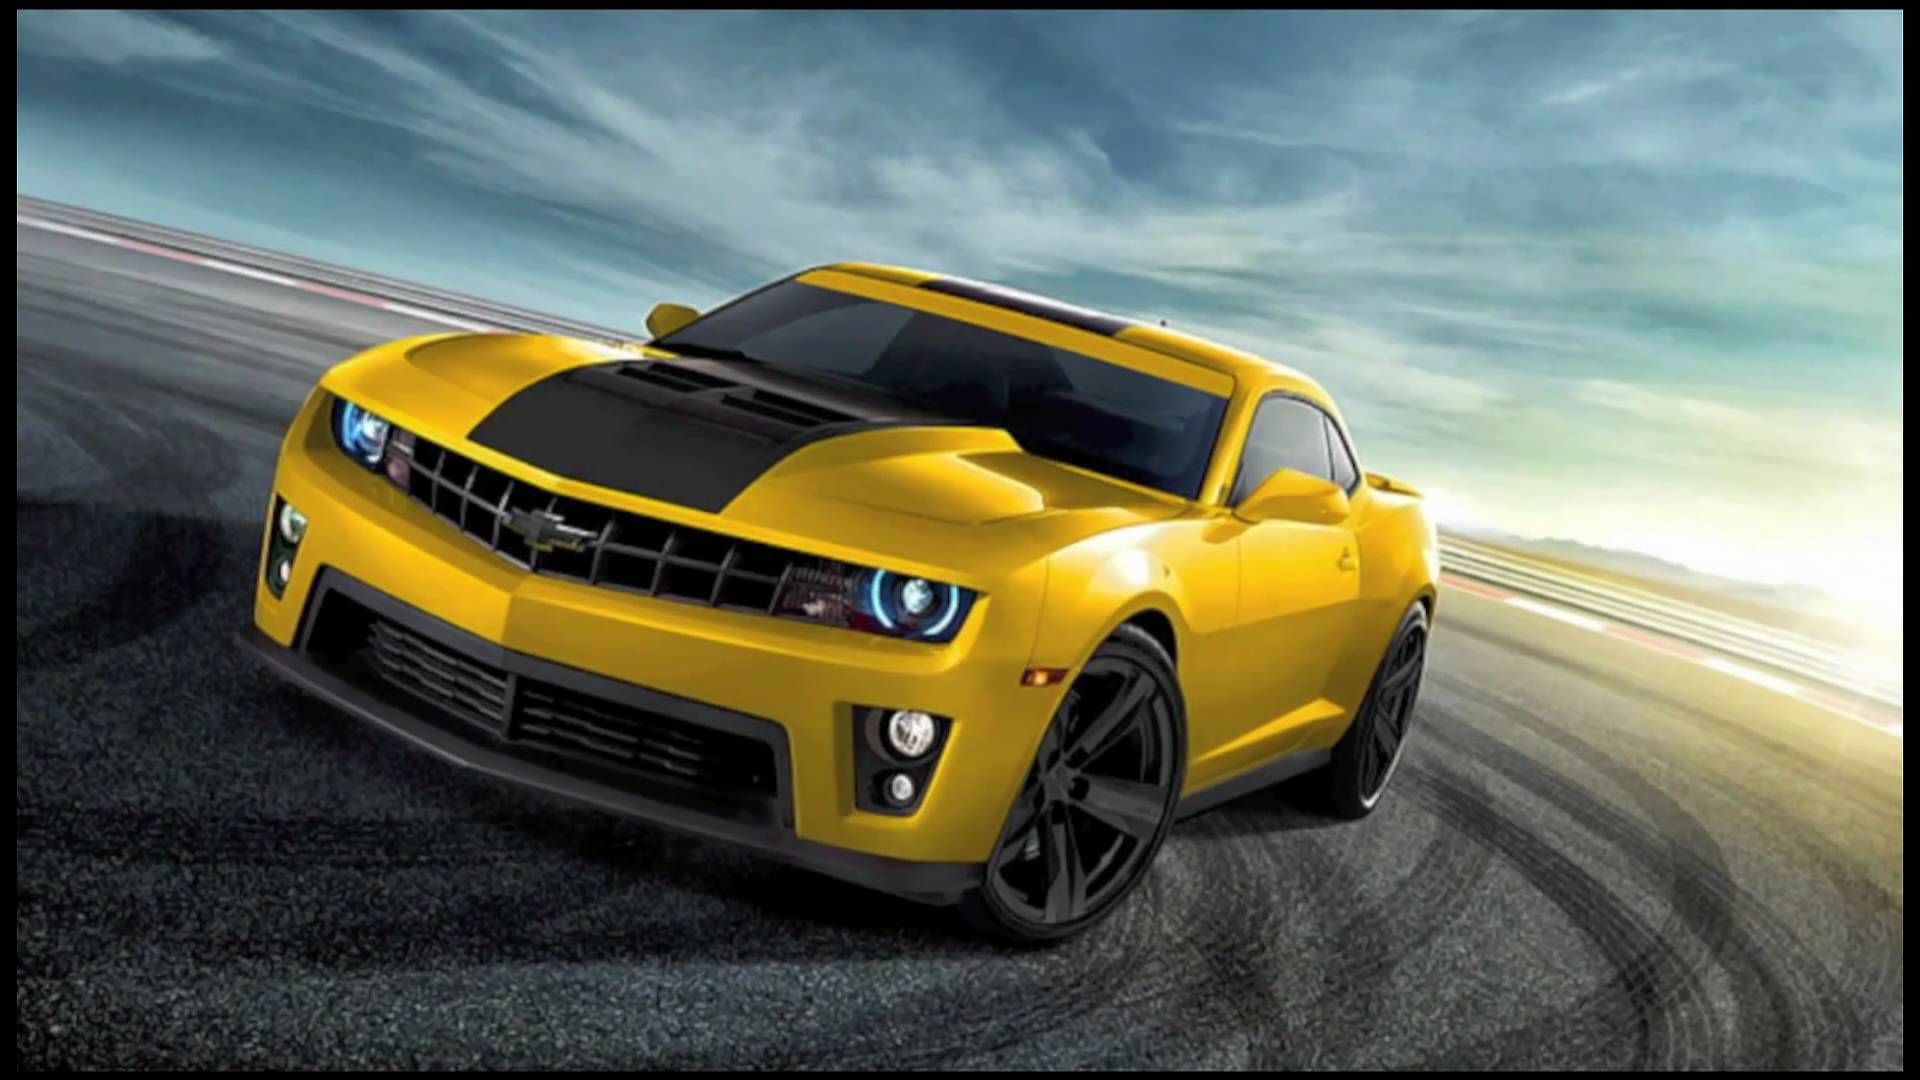 Get Best Chevy Car Dealer In Houston Tx Our Chevrolet Have Huge Colection Of New And Used Chevy Camaro Car Inventory At Affordable Price For Car